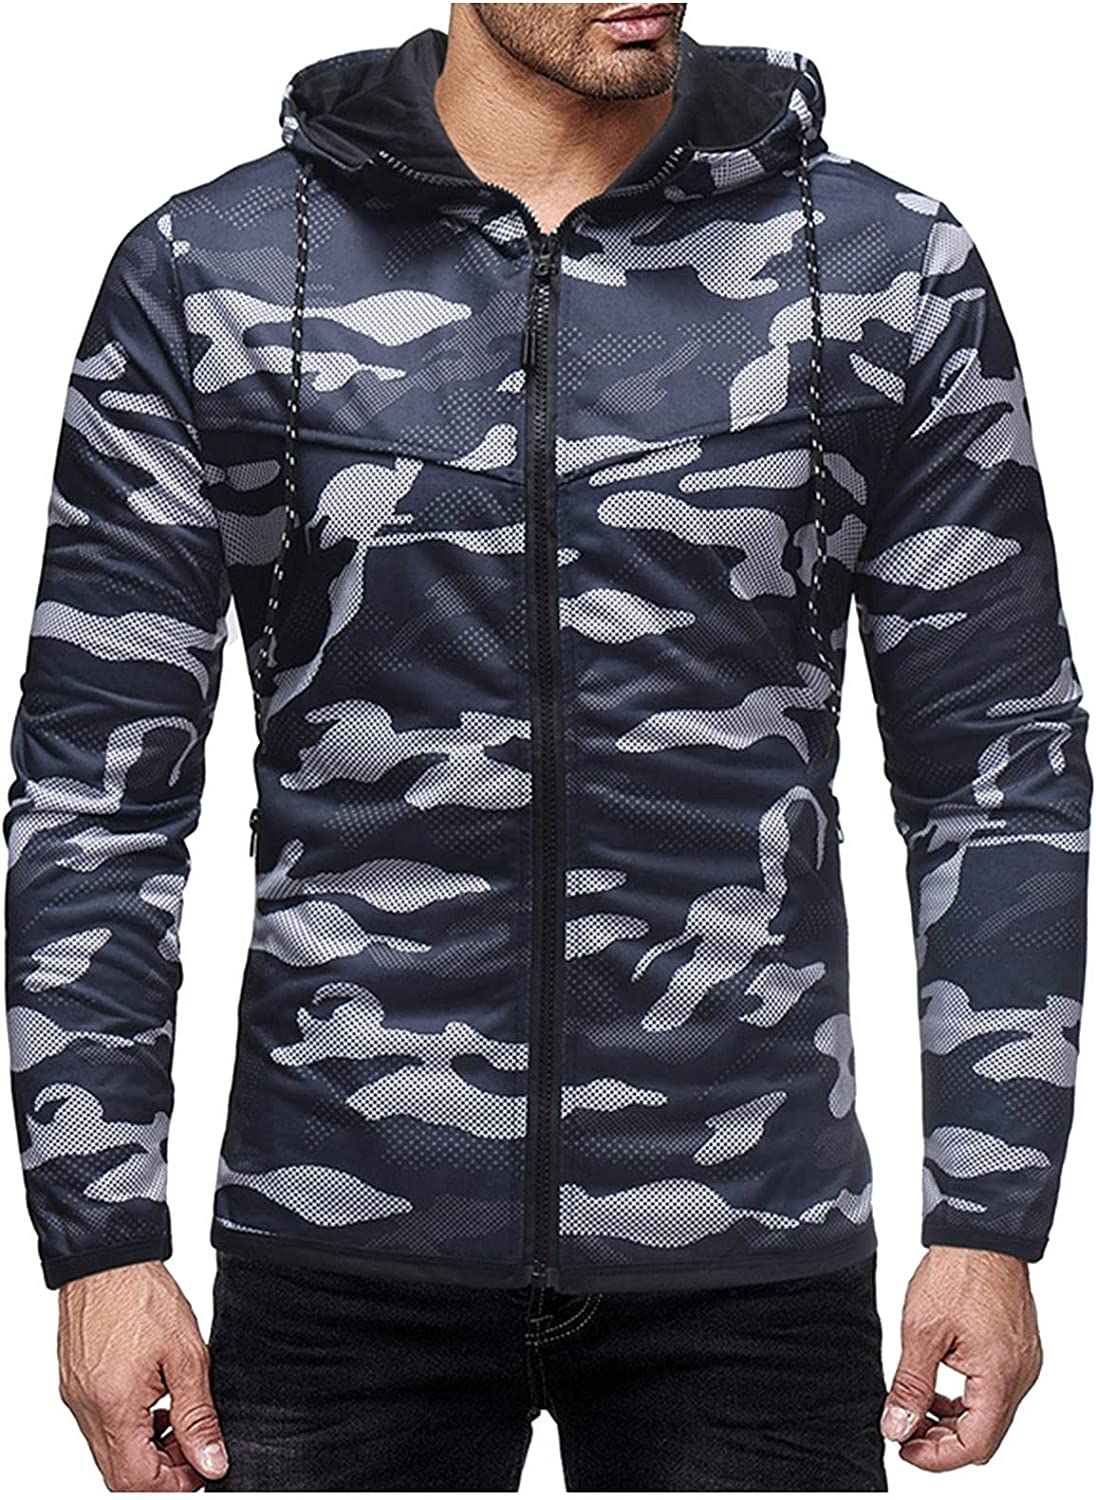 XXBR Camo Hoodies for Mens, Fall Zipper Camouflage Patchwork Drawstring Hooded Sweatshirts Slim Fit Casual Jackets